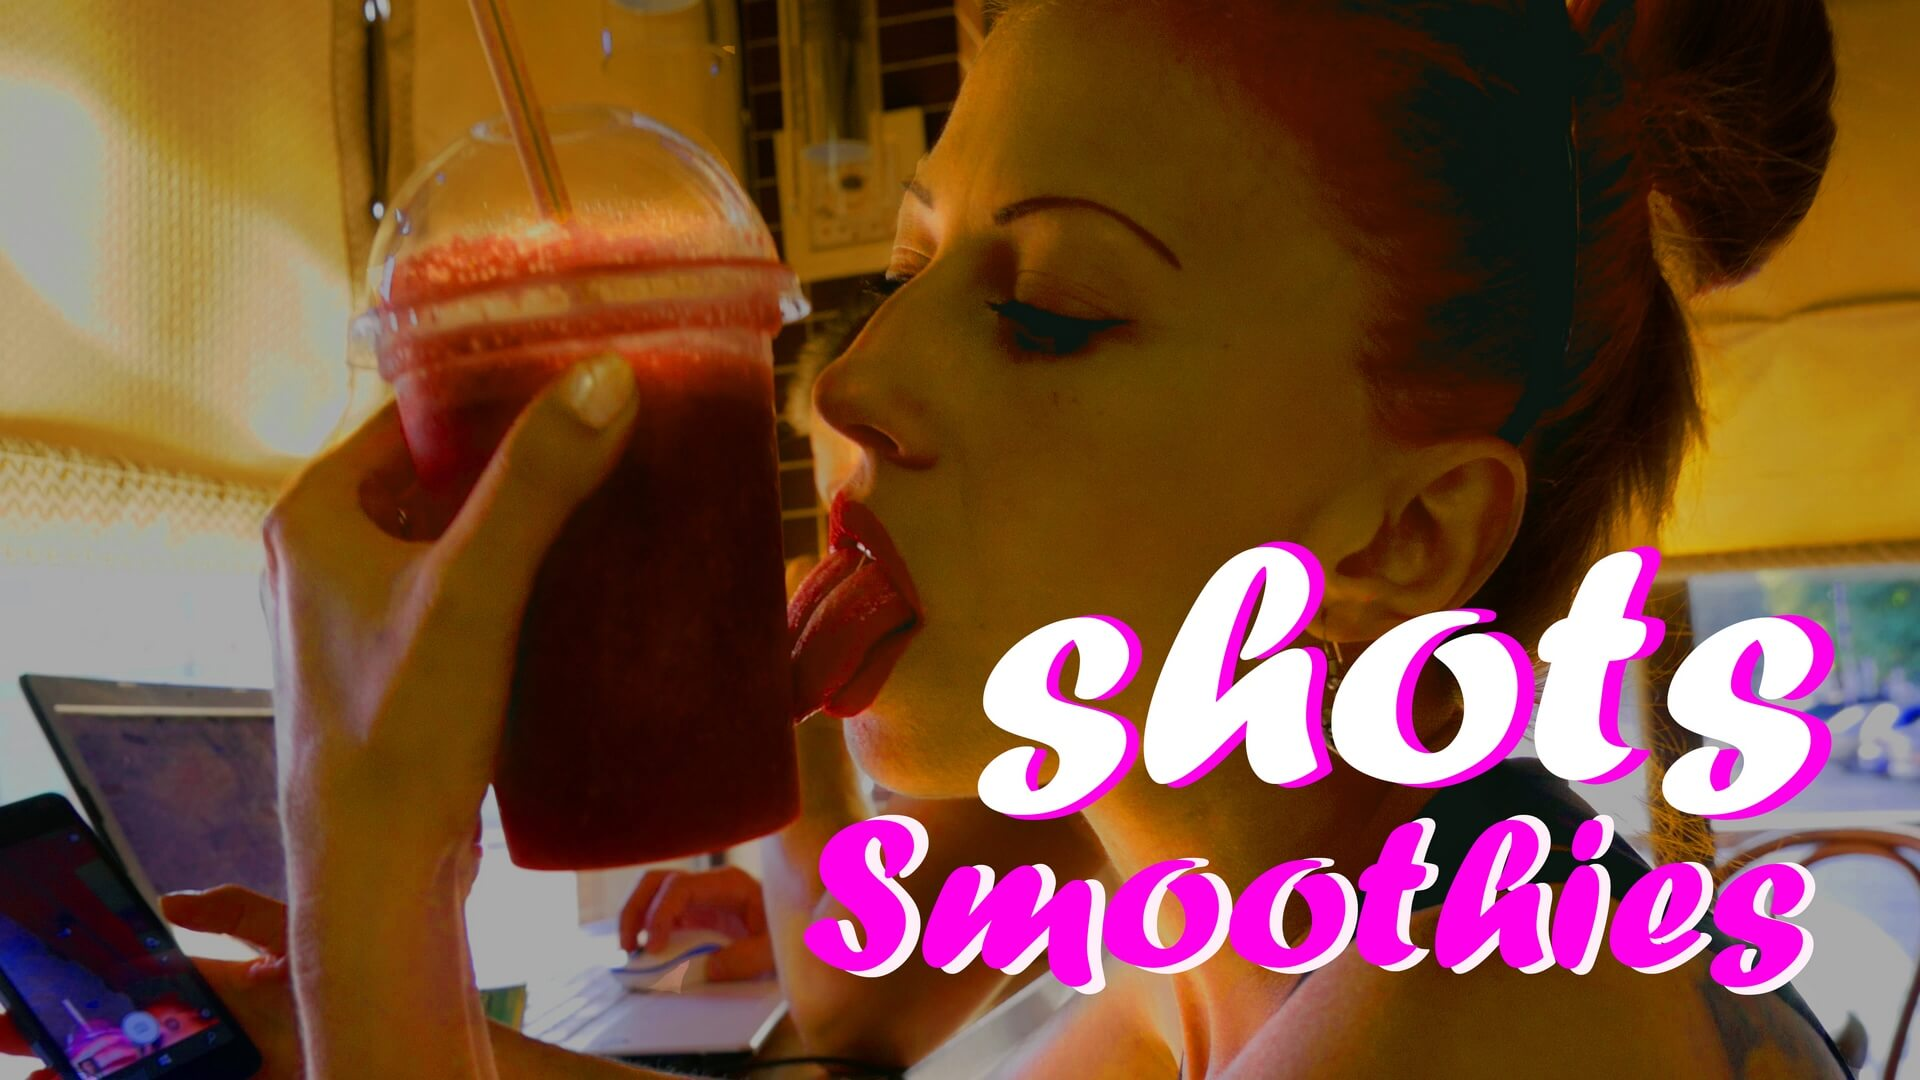 smoothie shot cafe talking web s - song